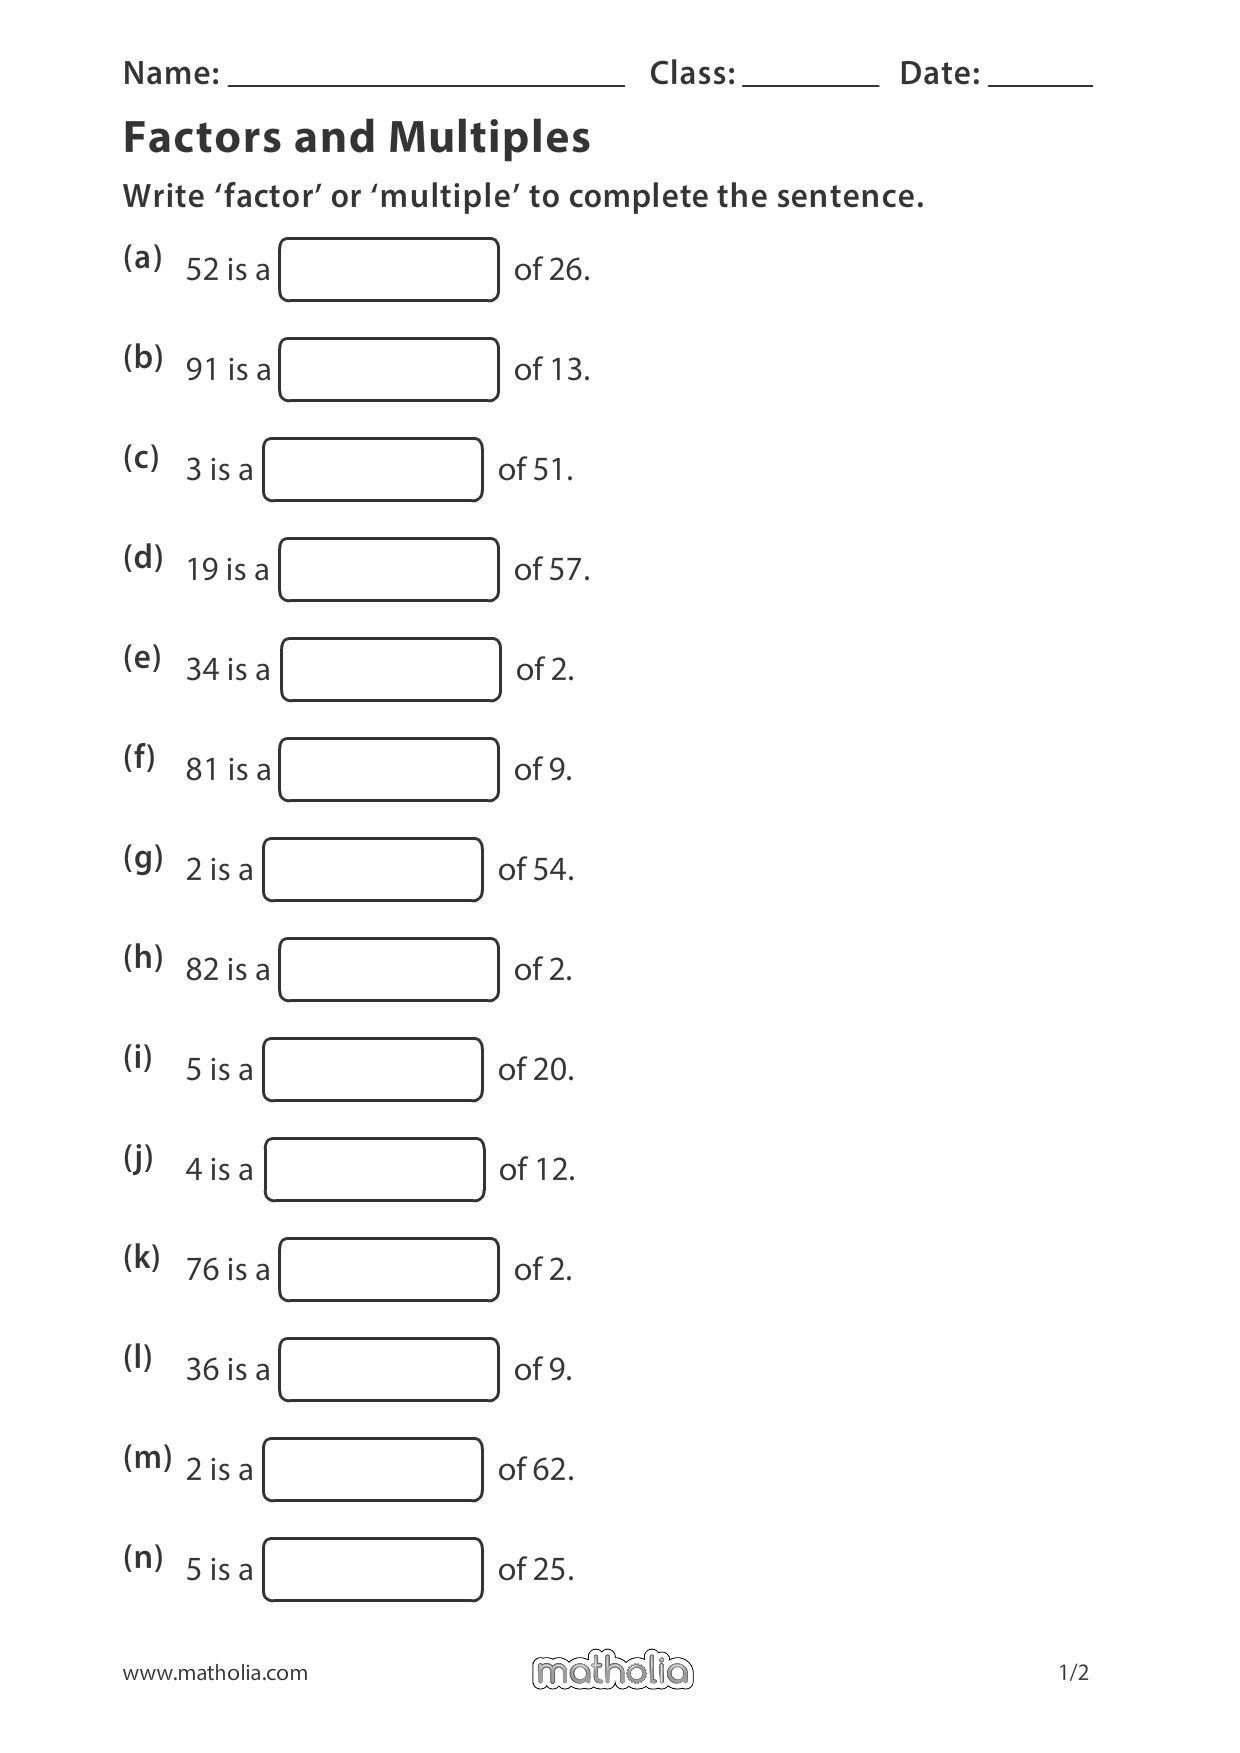 Factors And Multiples Factors And Multiples Grade 6 Math Worksheets Mathematics Worksheets